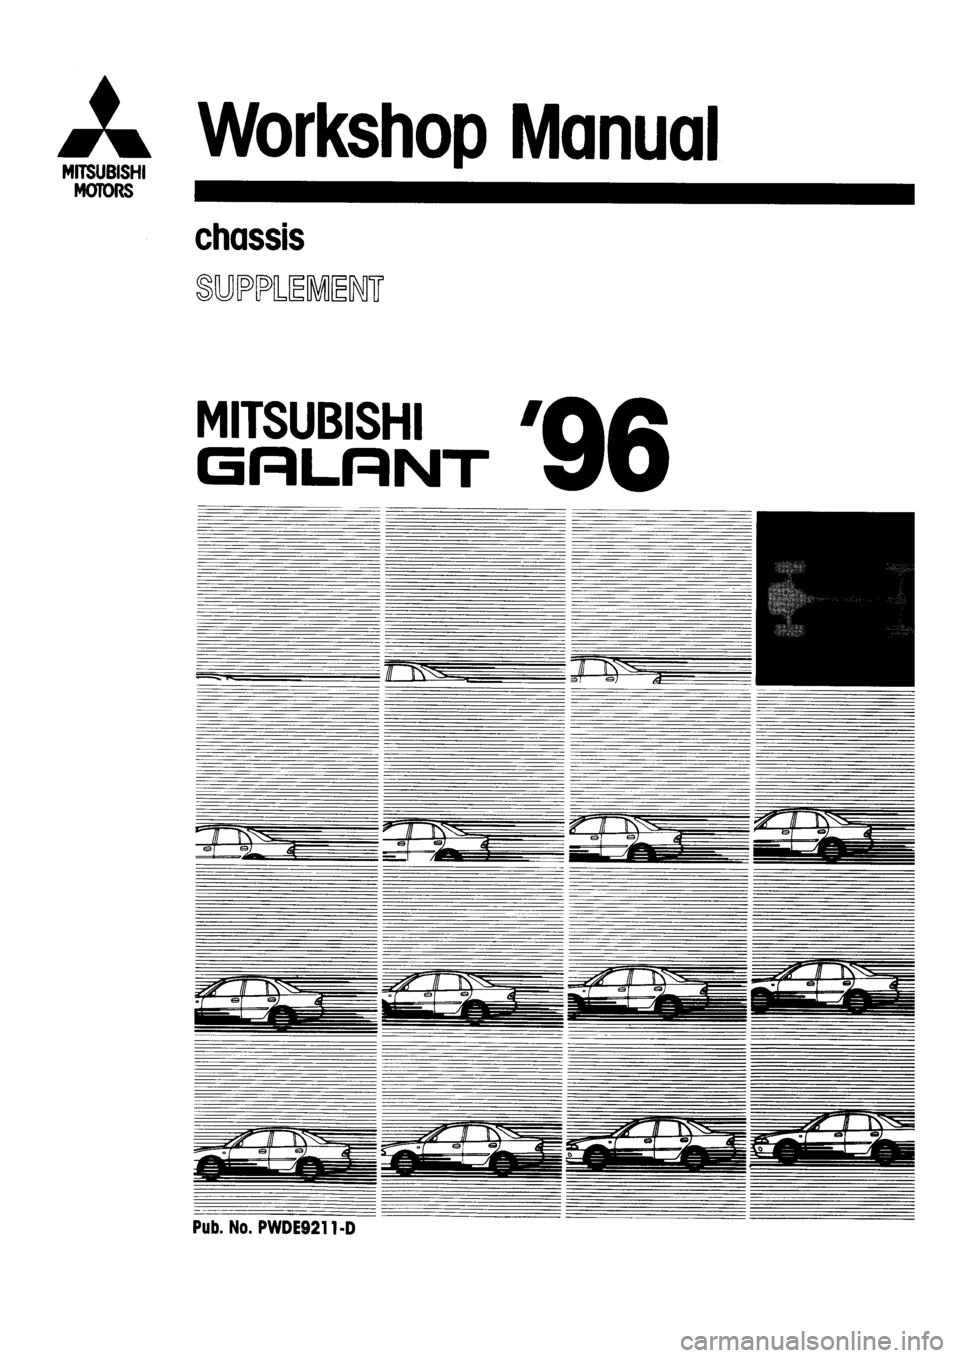 2011 Mitsubishi Galant Service Manual One Word Quickstart Guide Wiring Diagram Pdf 2000 Es Owners User Manuals By 2003 Transmission Interior